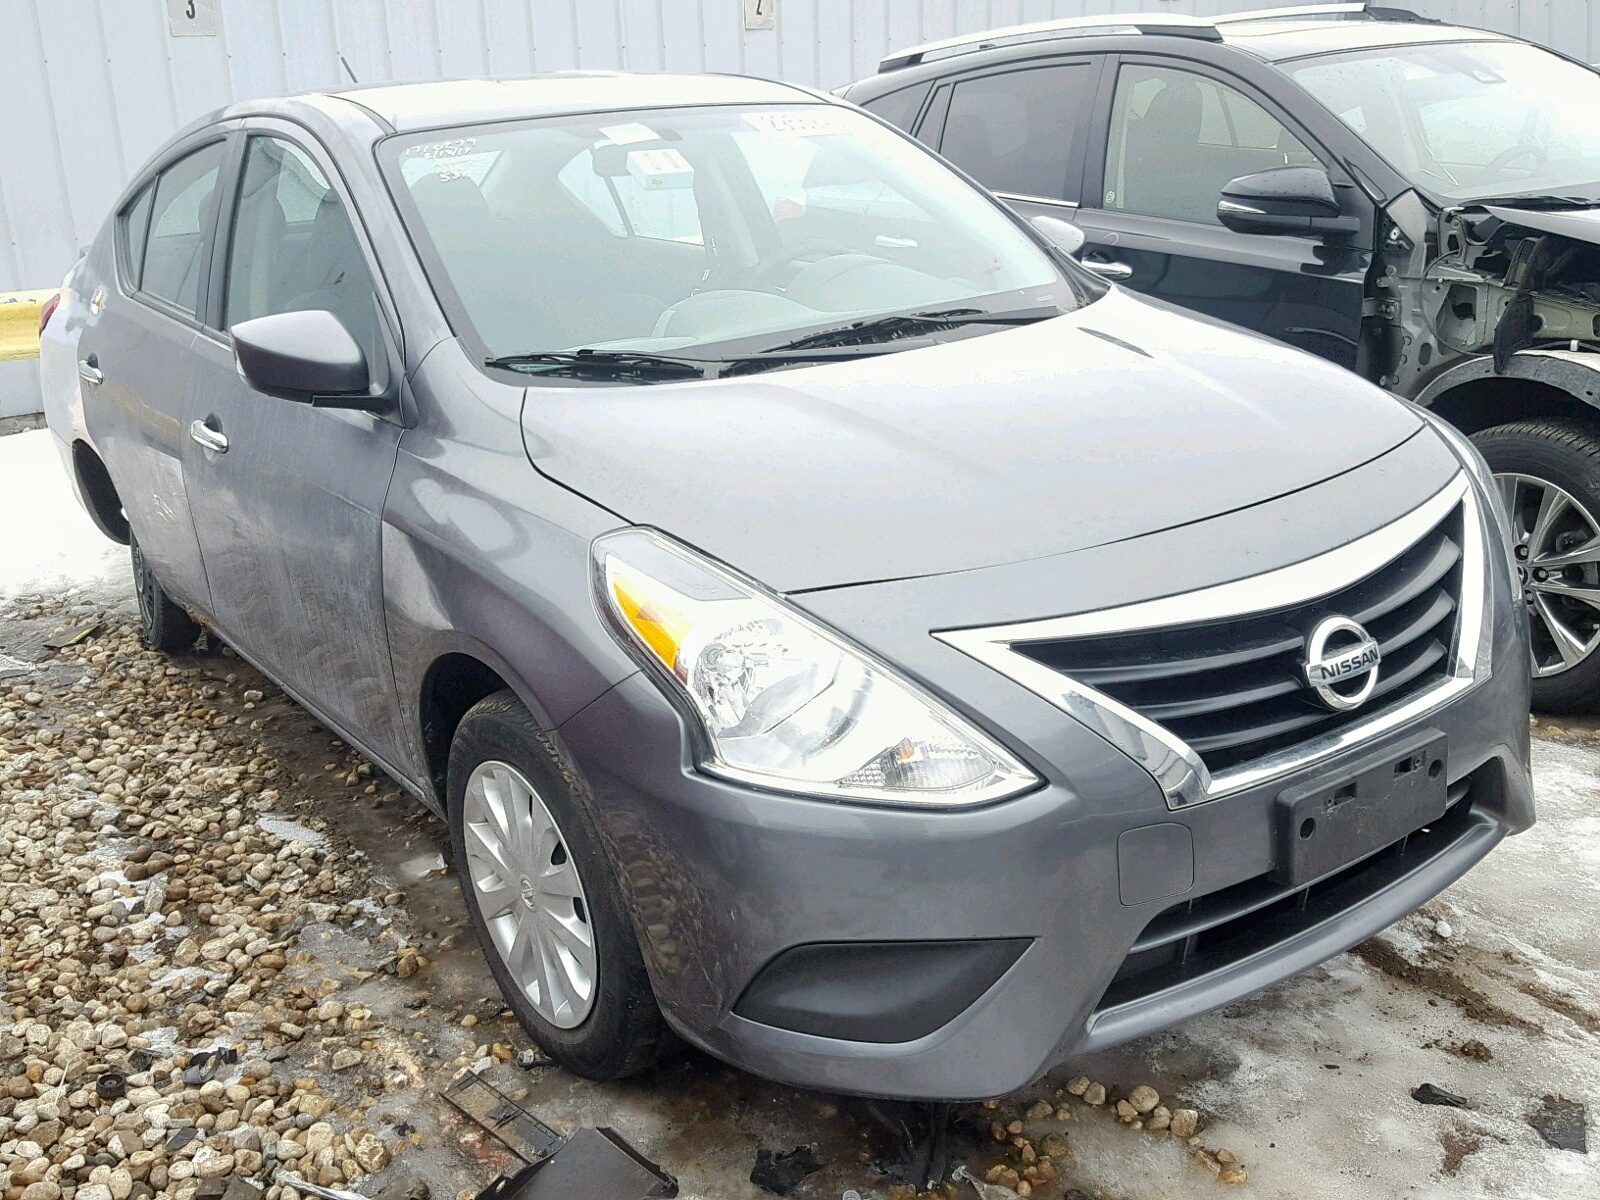 Salvage 2017 Nissan VERSA S for sale